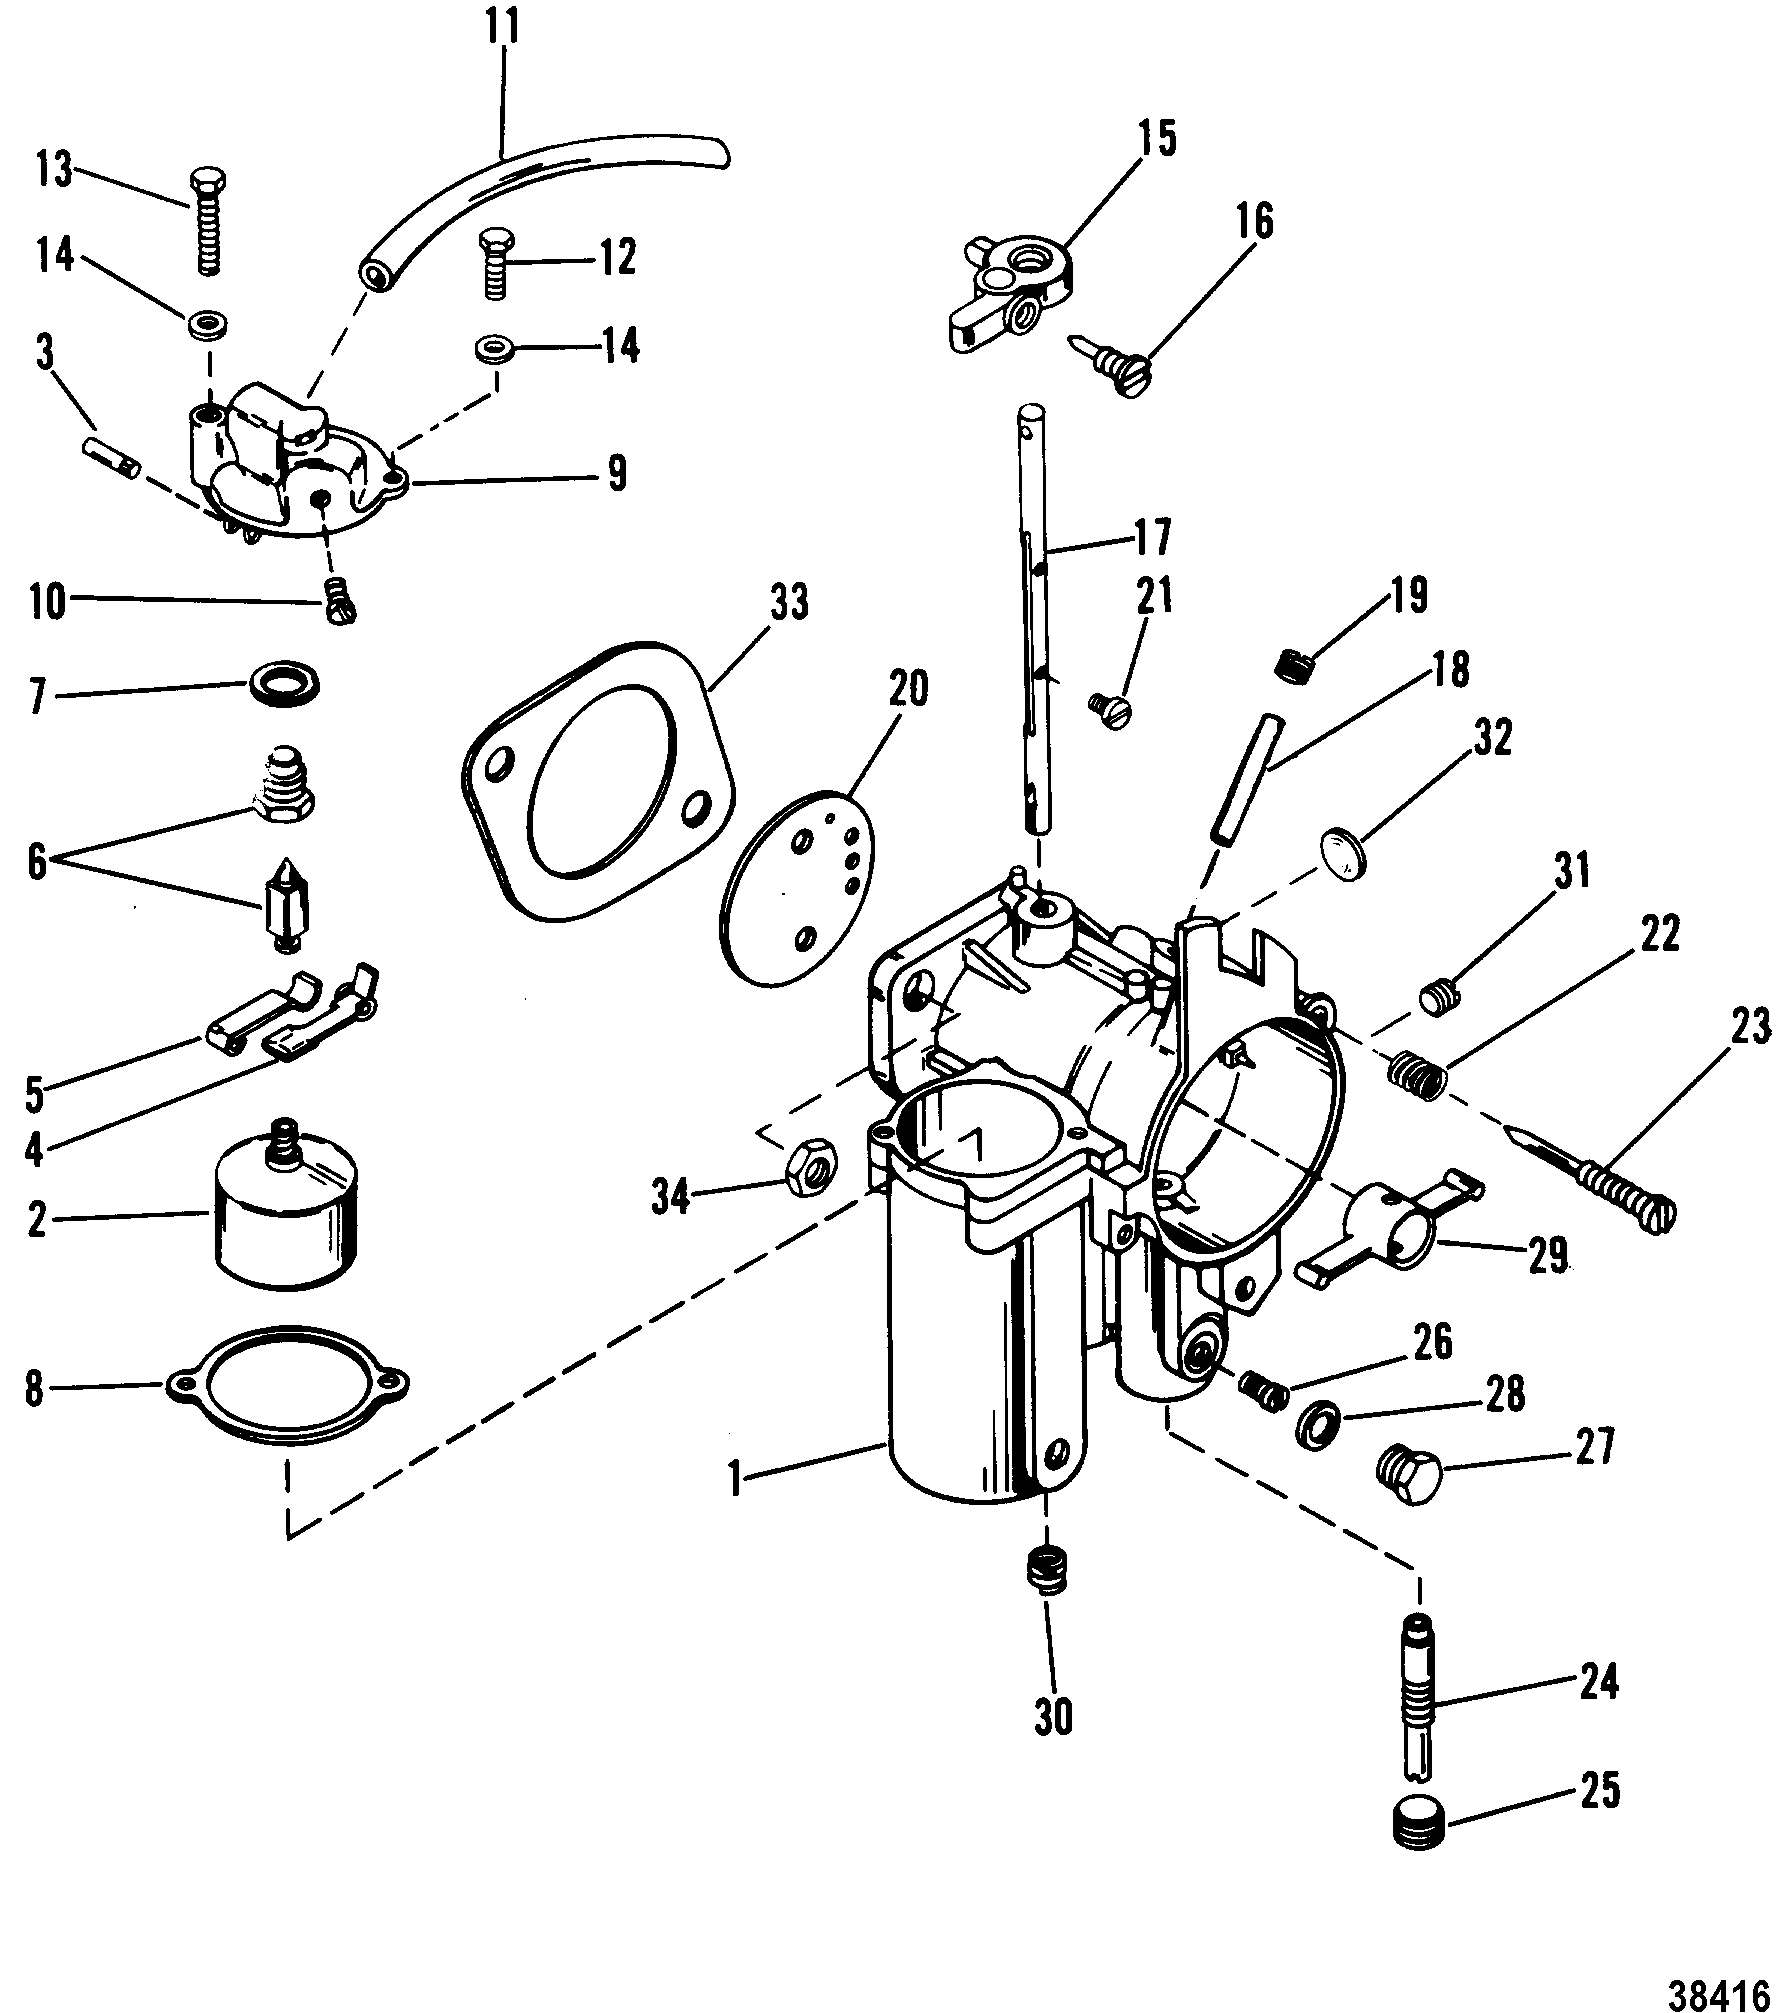 35 Hp Mercury Carburetor Diagram, 35, Free Engine Image